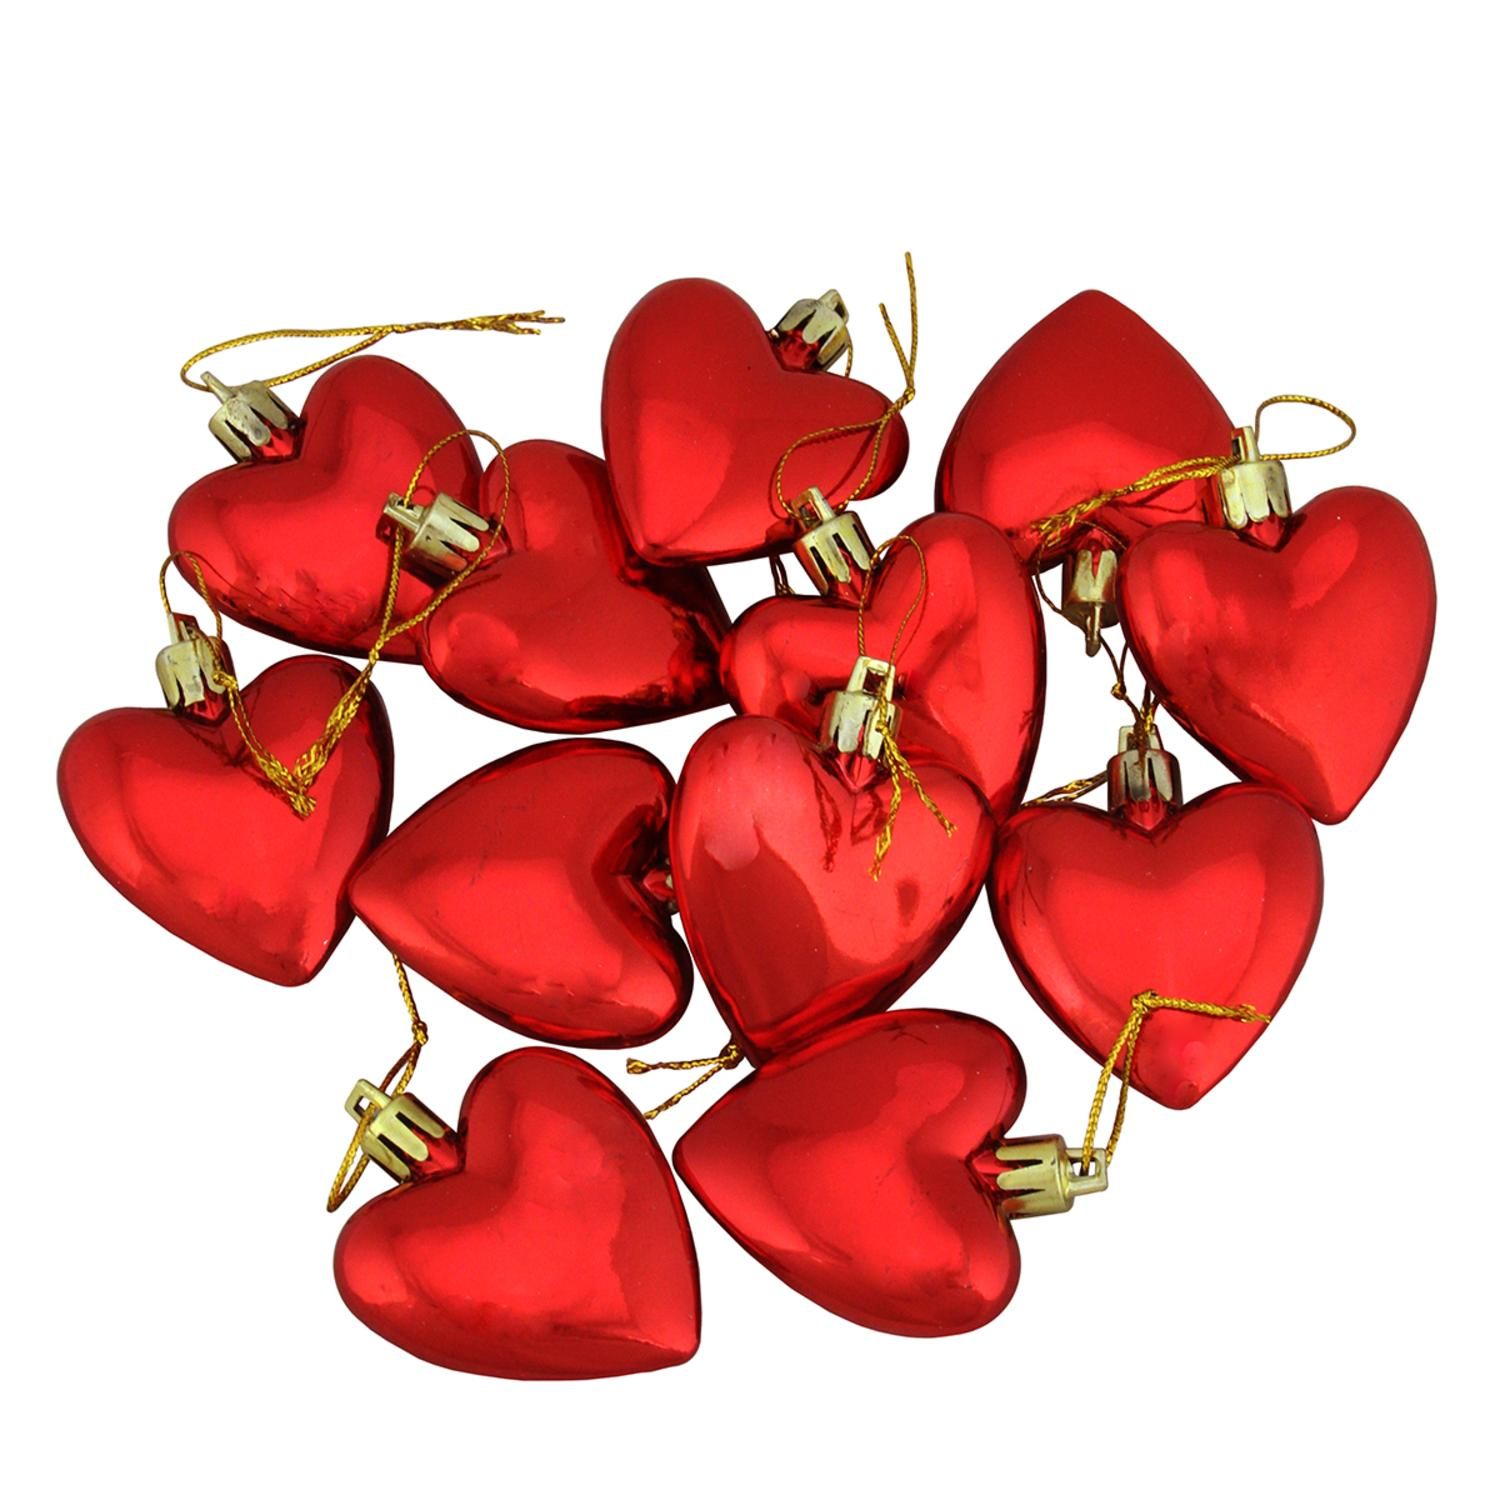 12ct Valentines Day Red Shatterproof Heart Christmas Ornaments 2""